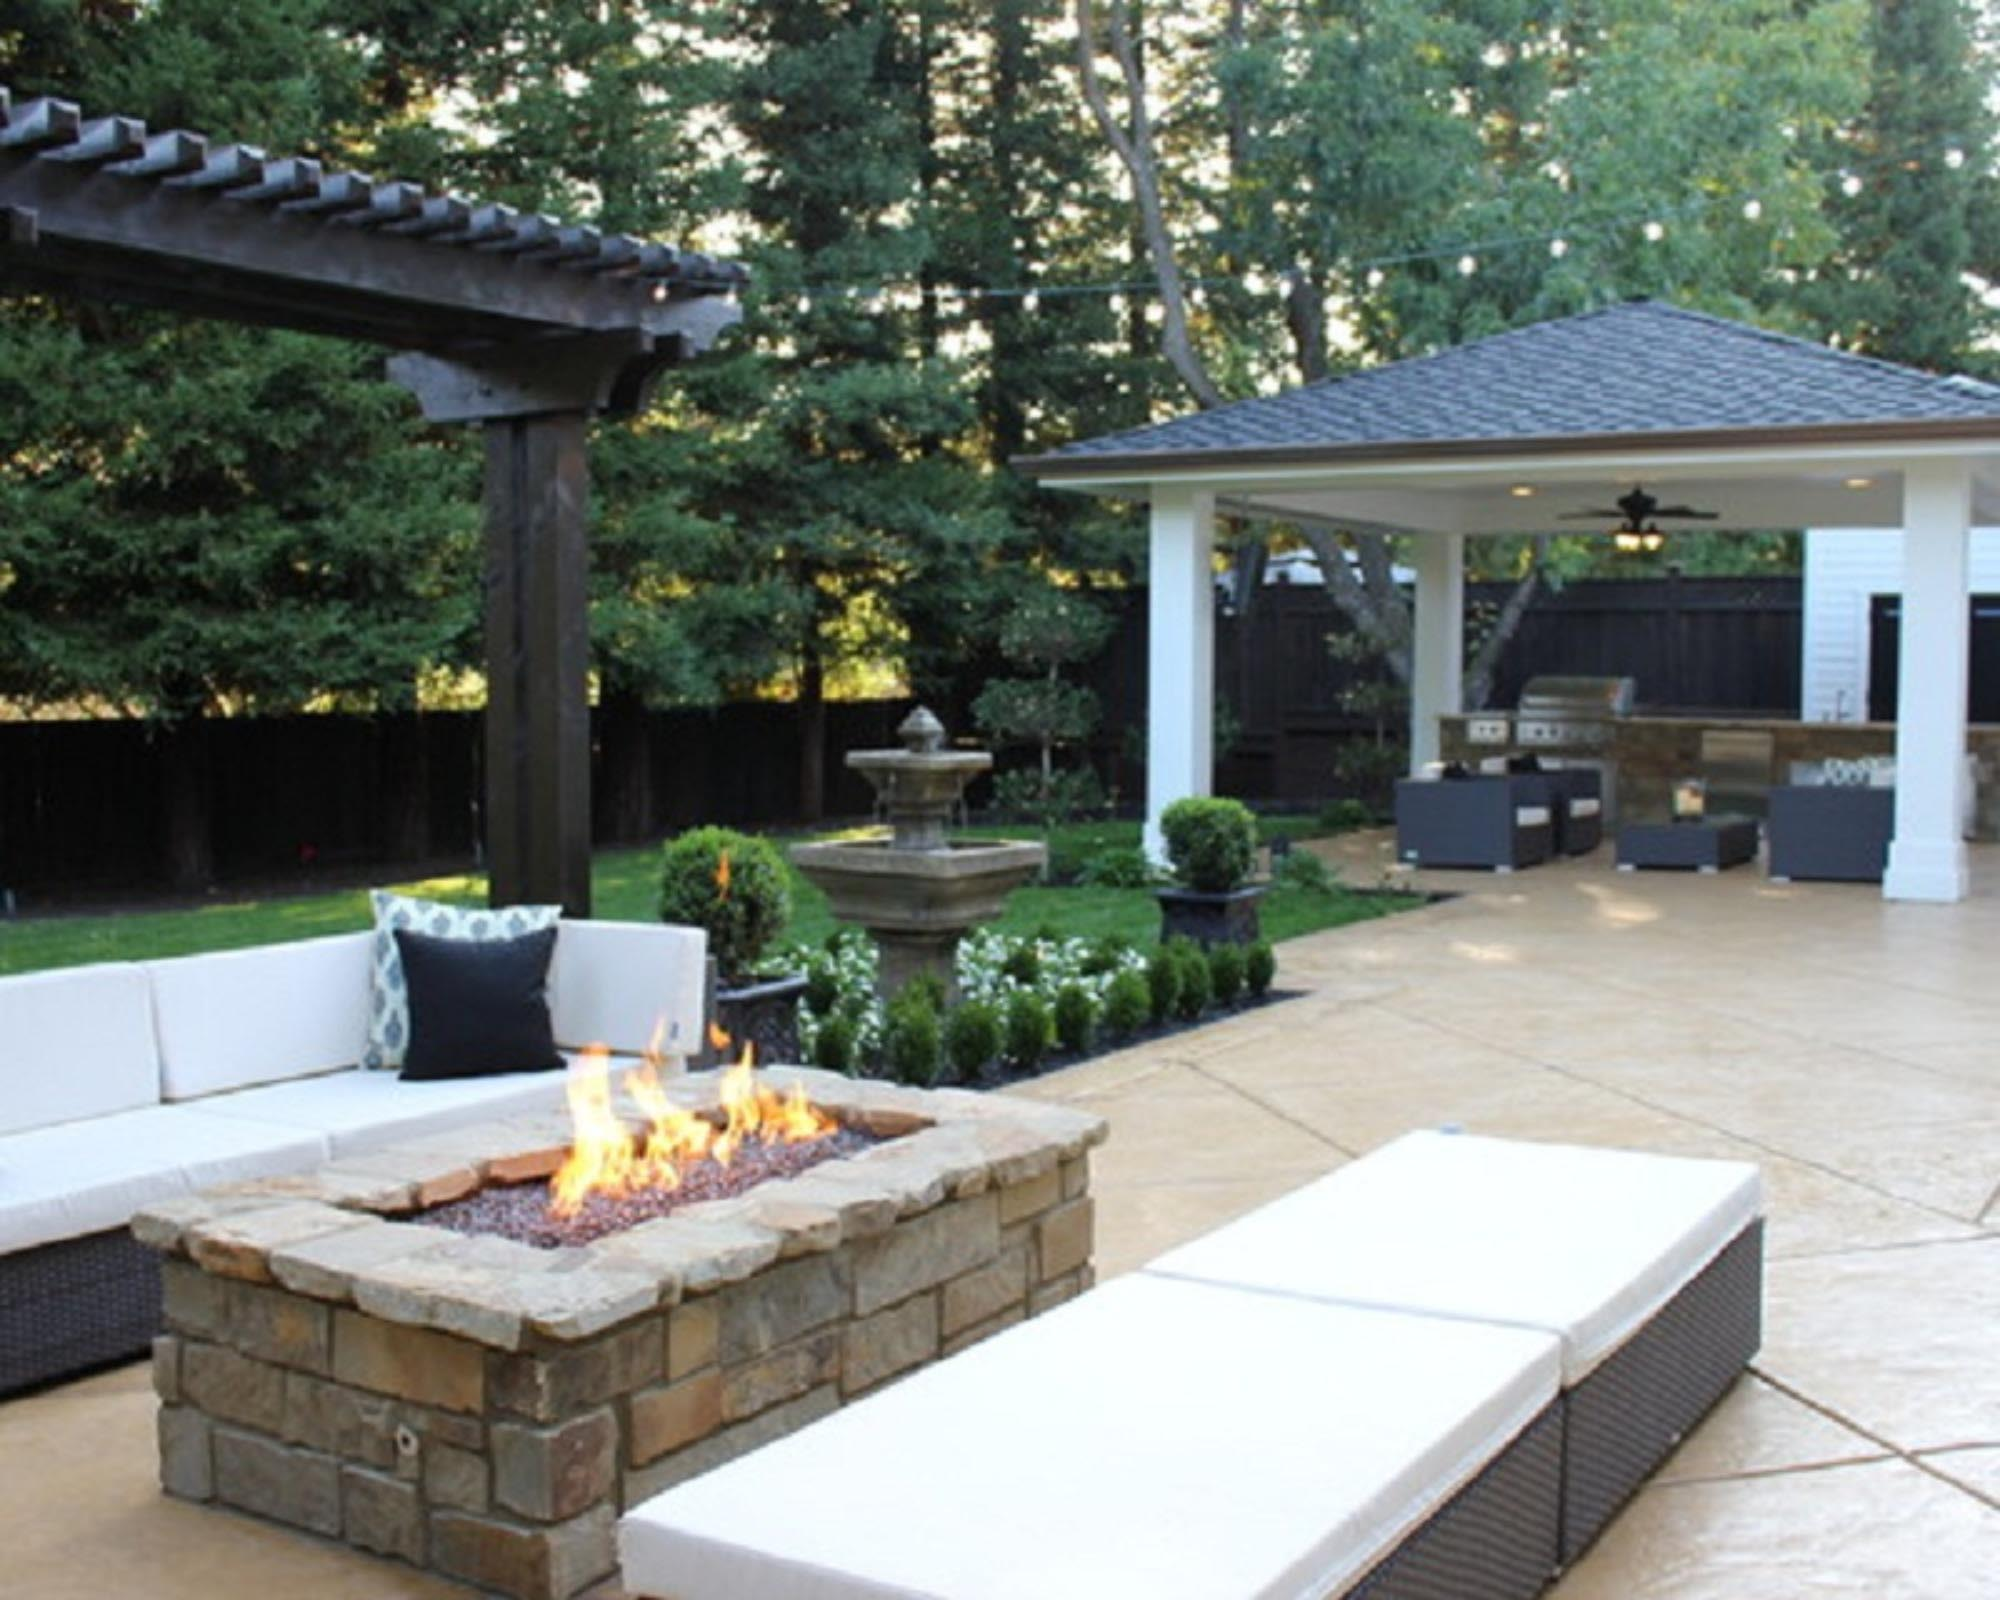 Modern Fire Pit in Your Garden | Fire Pit Design Ideas on Garden Ideas With Fire Pit id=44775